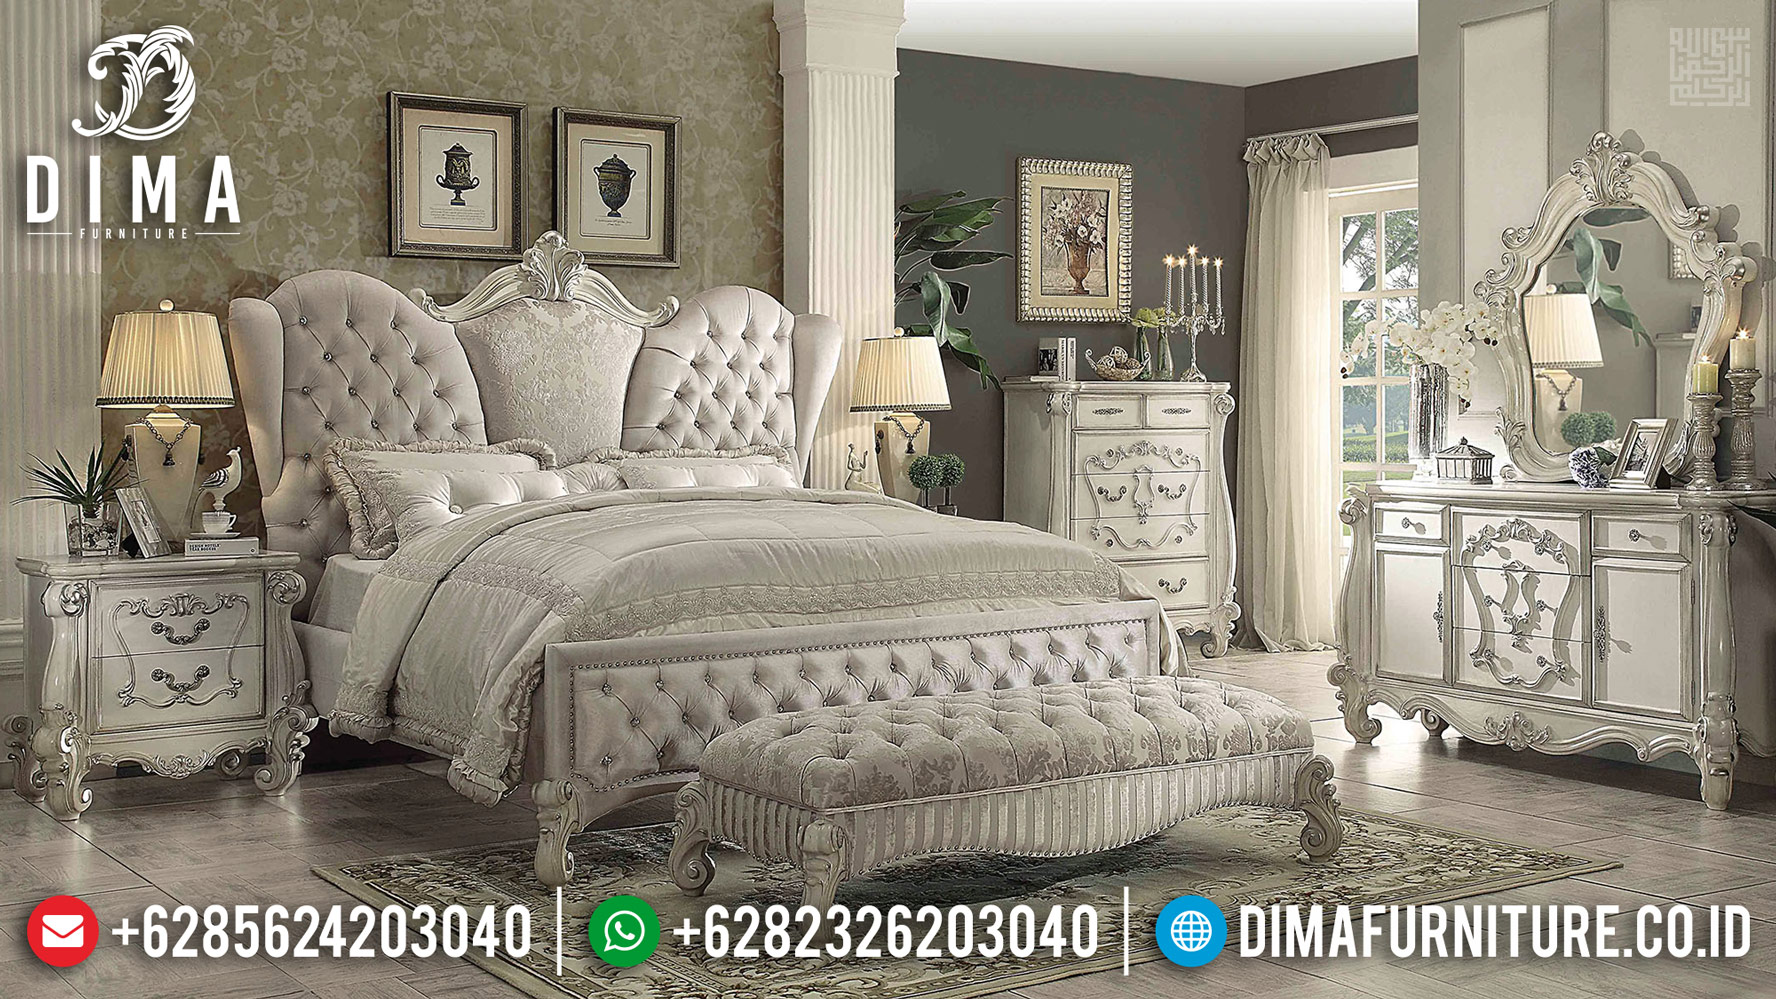 New Kamar Set Mewah Furniture Jepara Luxury BT-0388